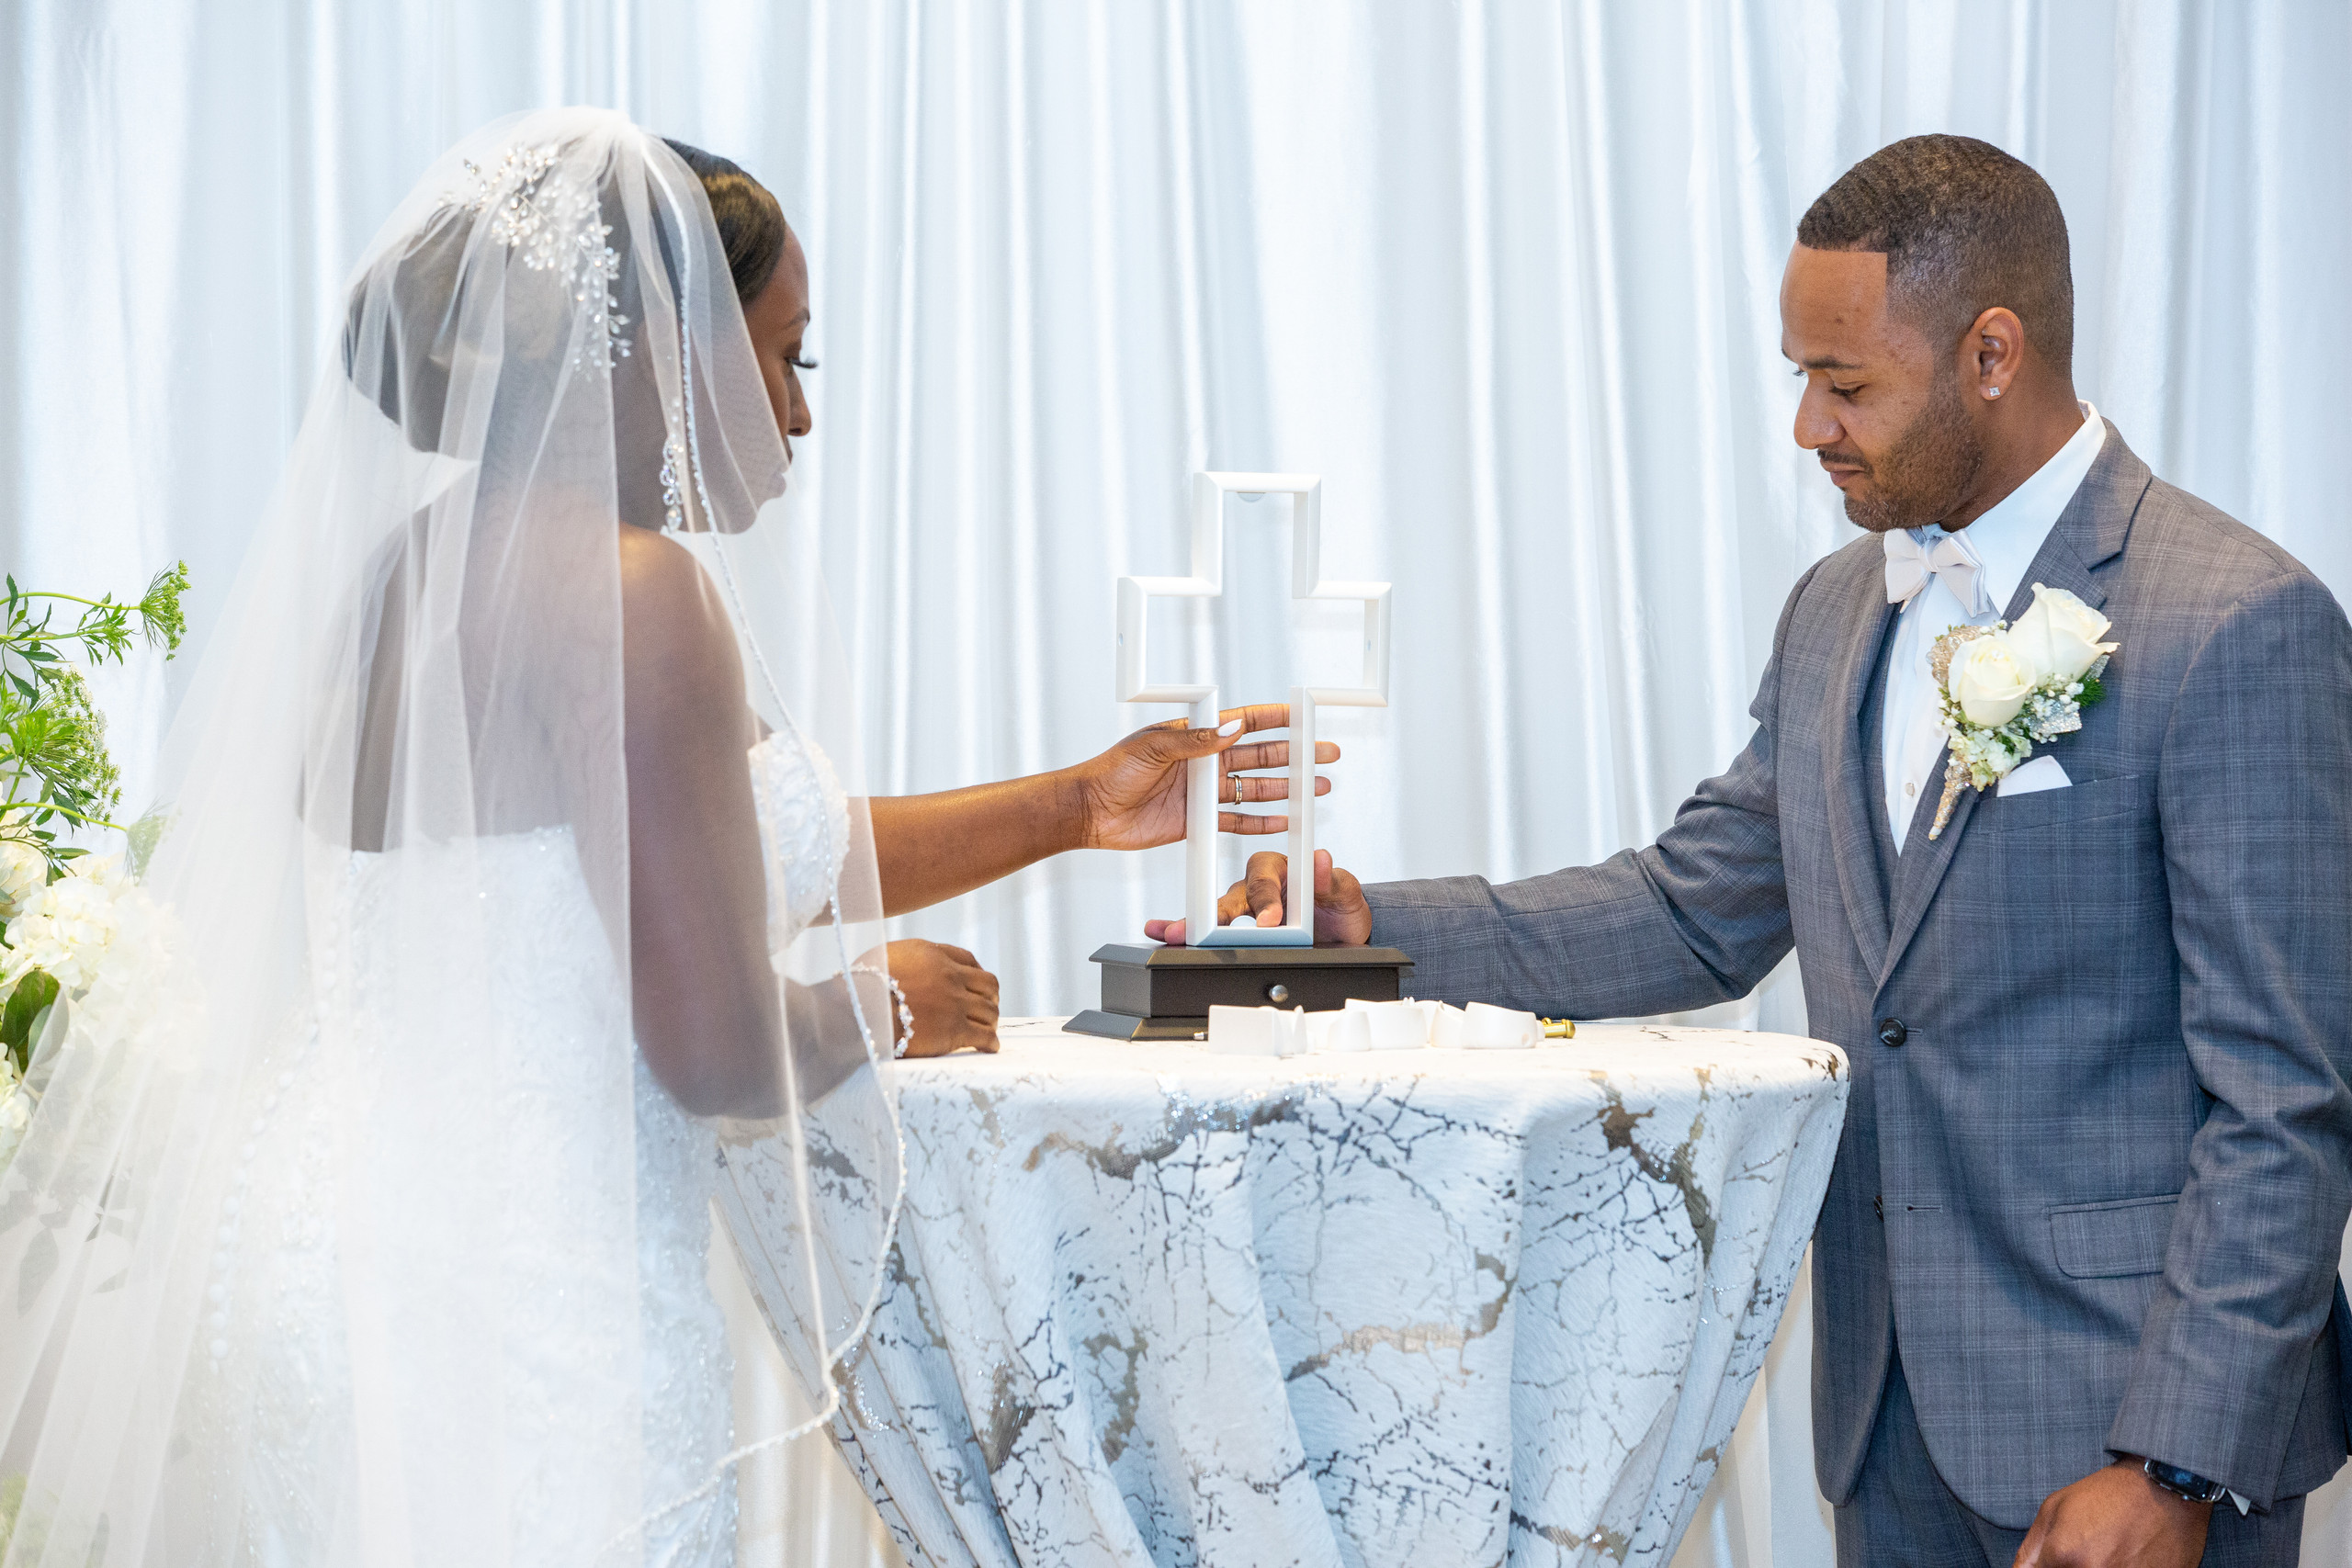 The bride and groom partake in the cross building ceremony during the wedding ceremony at the Hilton Main in Norfolk, Virginia.